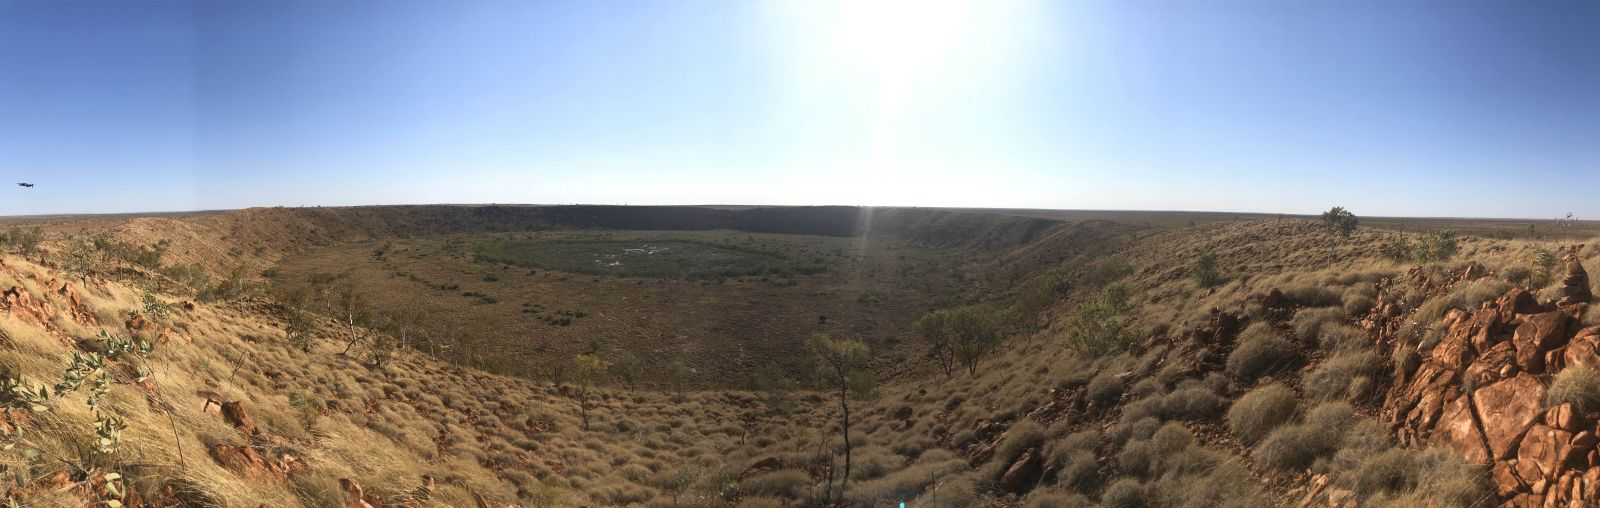 Wolfe creek crater.